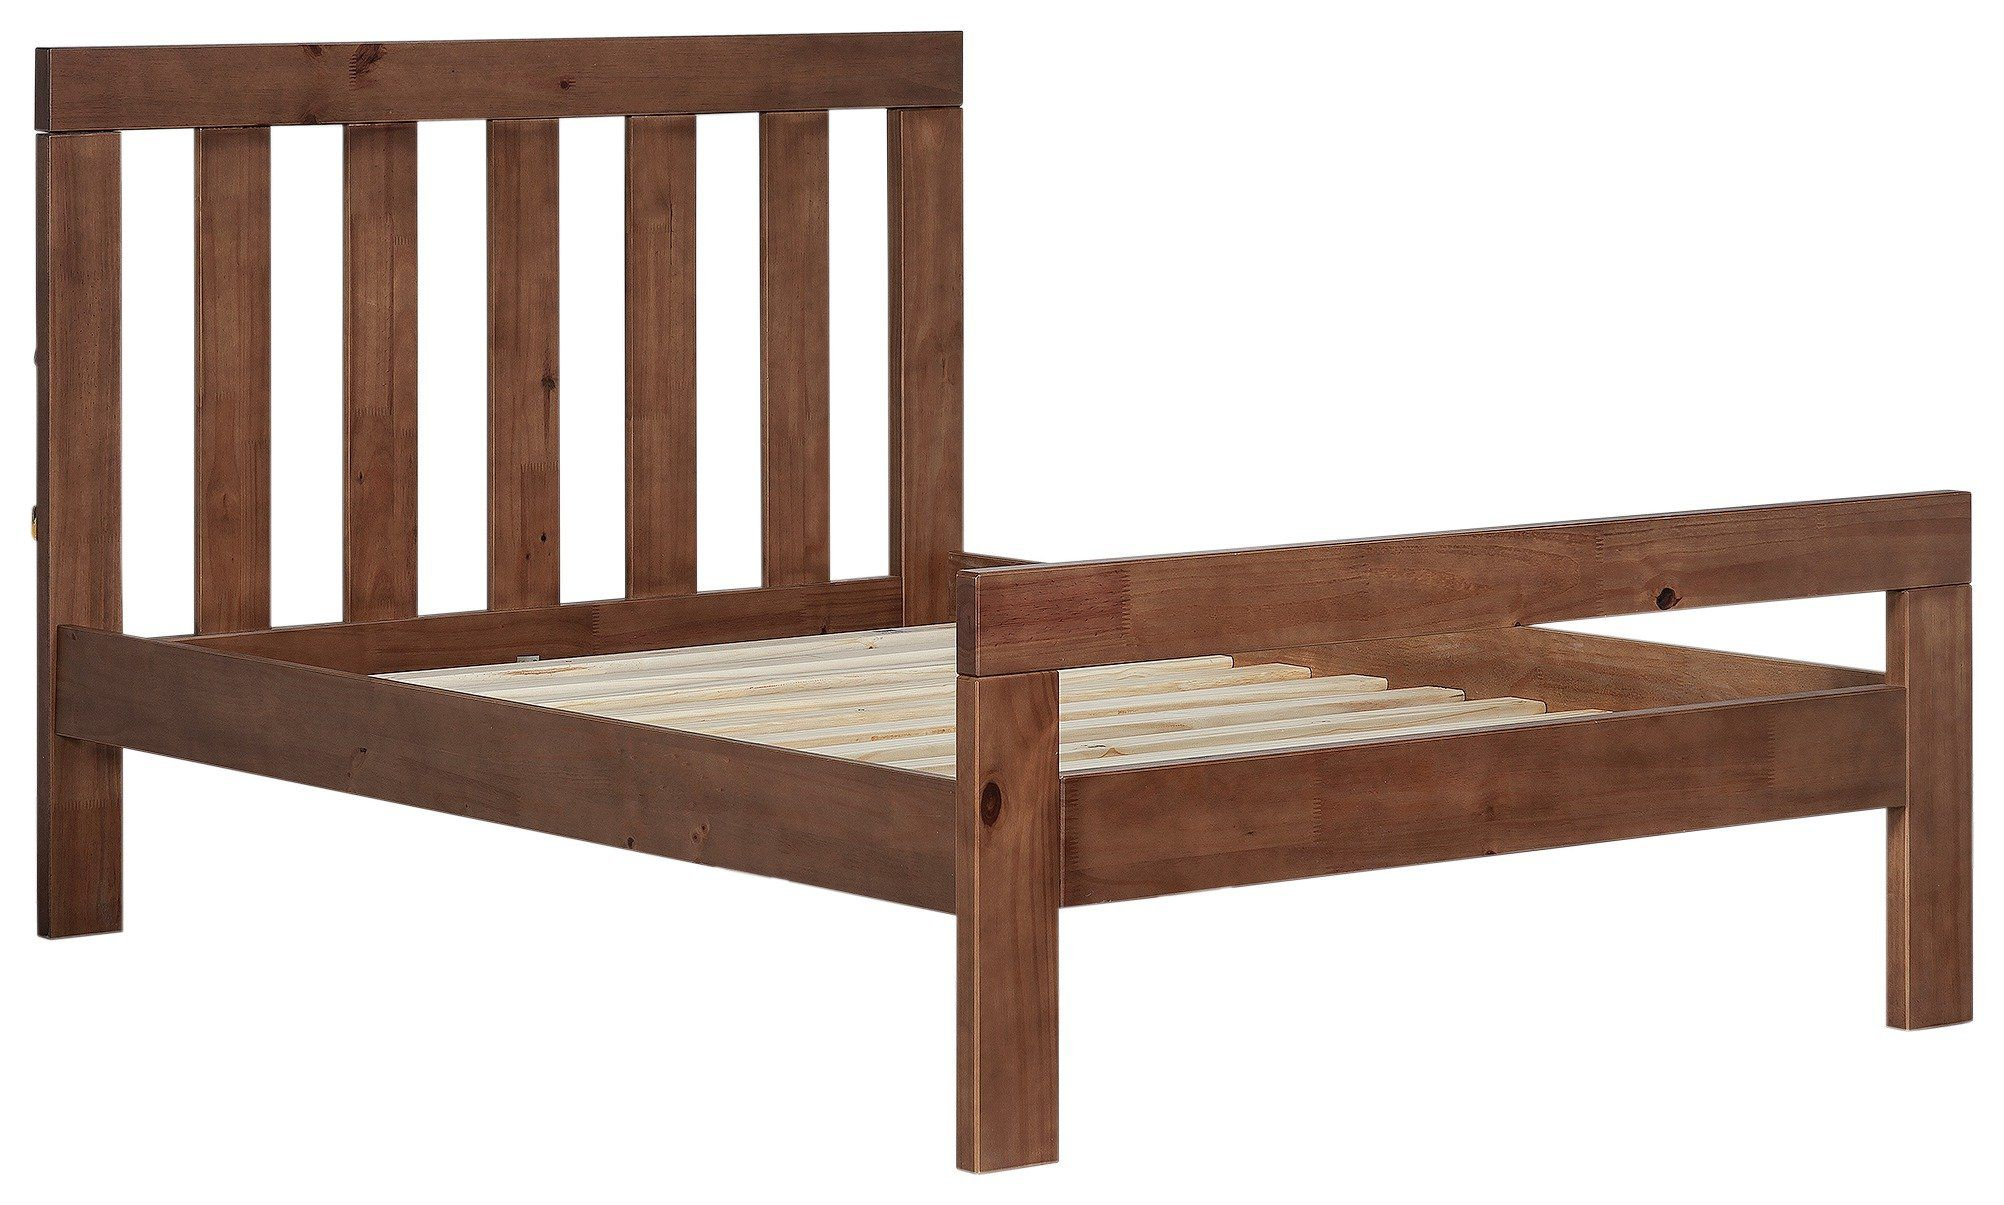 4969460_R_Z001A (2004×1205) Double bed frame, Bed frame